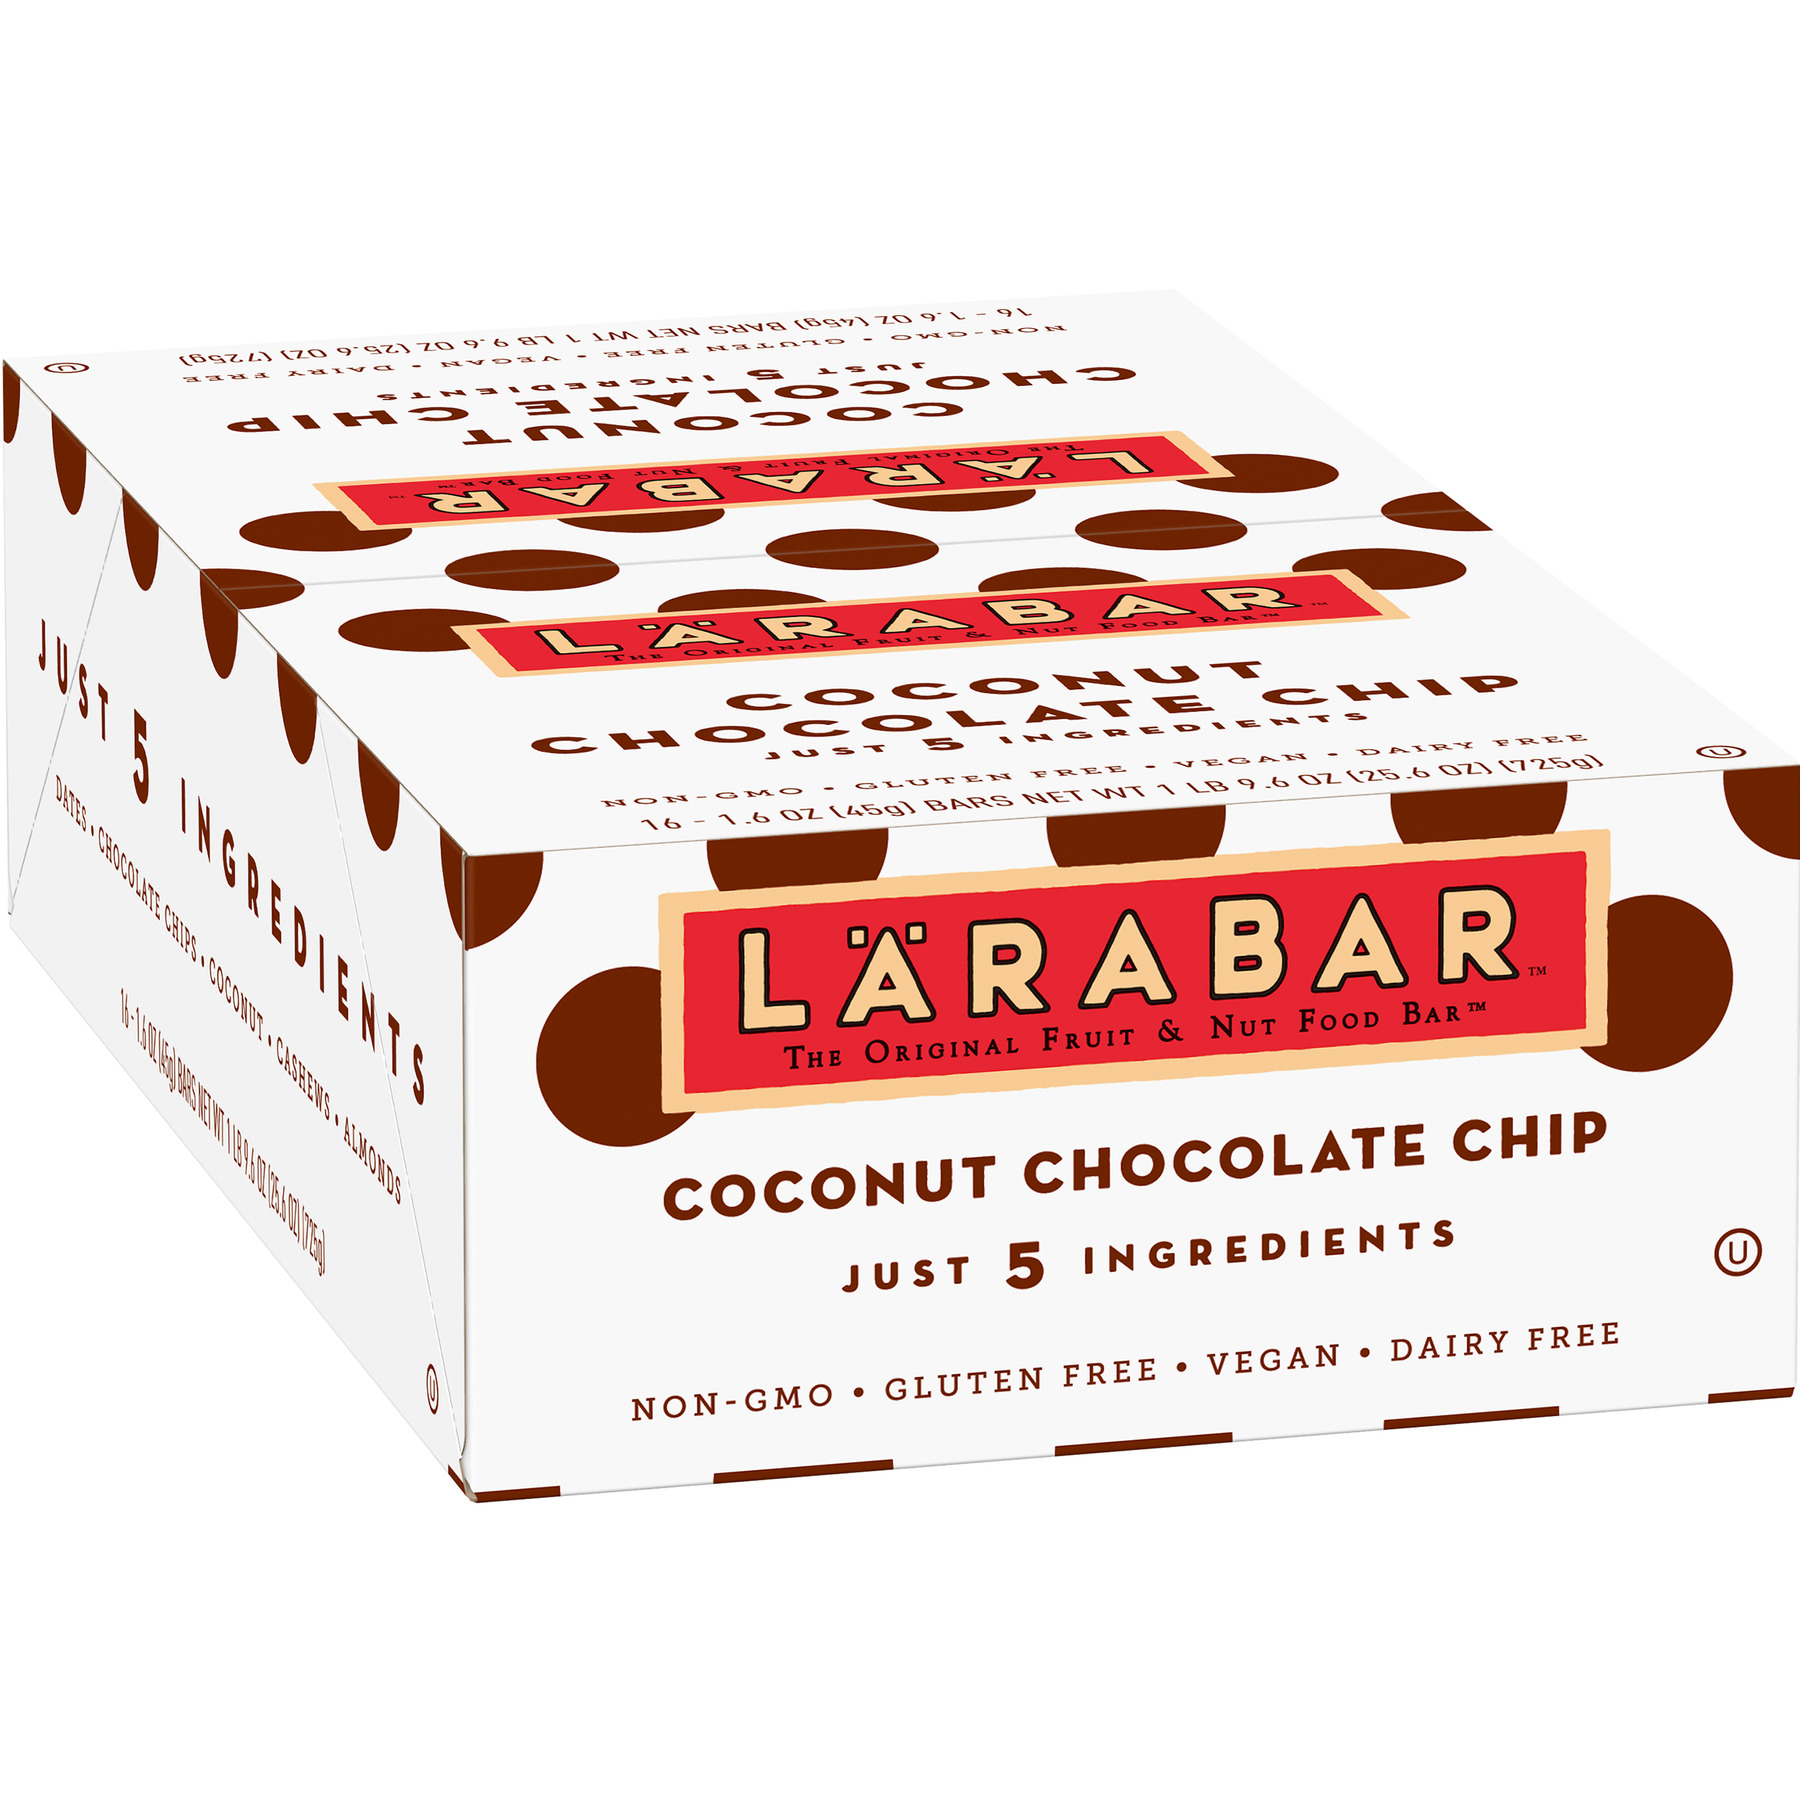 Larabar Gluten Free Bar Coconut Chocolate Chip 1.6 oz Bars (16 Count)